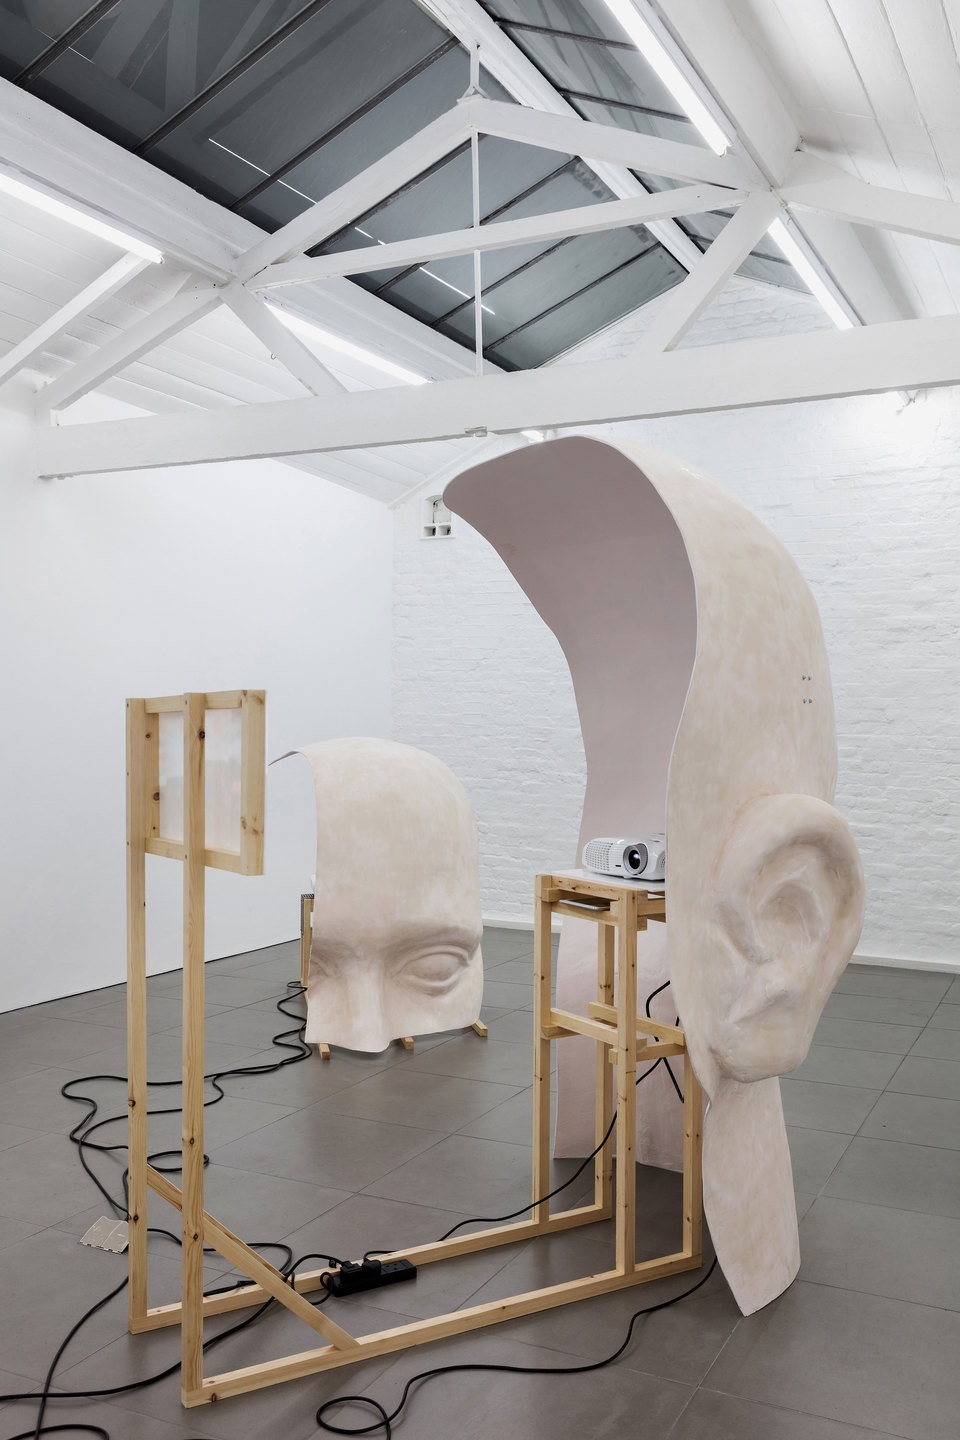 Anne de Vries, Submission, 2015, fibre glass resin, wood, perspex, metal, live stream webcams, four channel audio track: 16 mins 25 secs, dimensions variable. Cell Project Space